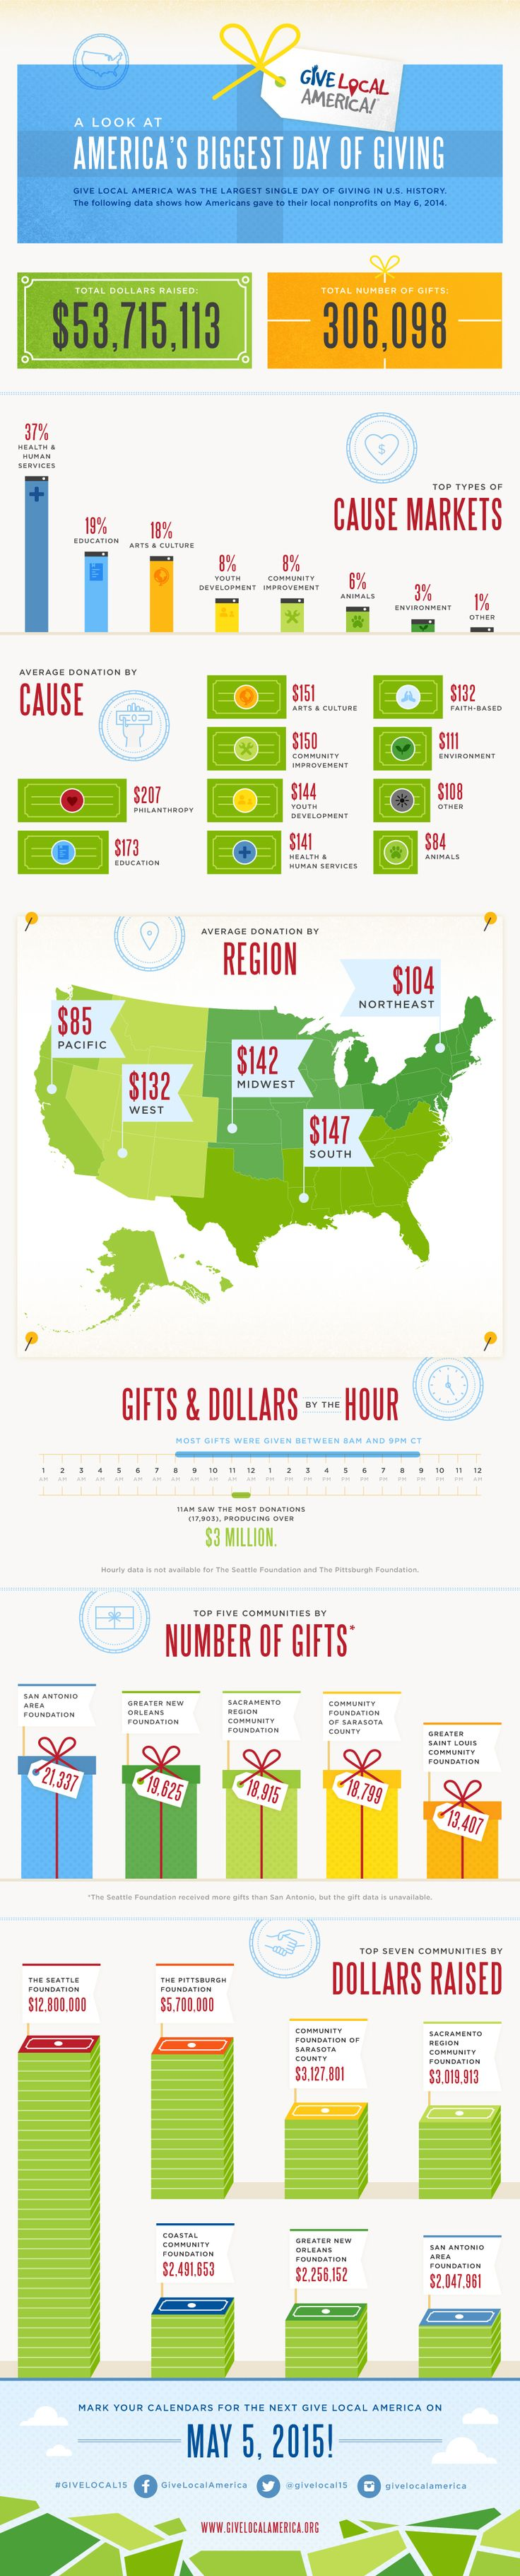 Give Local America: America's Biggest Giving Day in History #nonprofits #fundraising